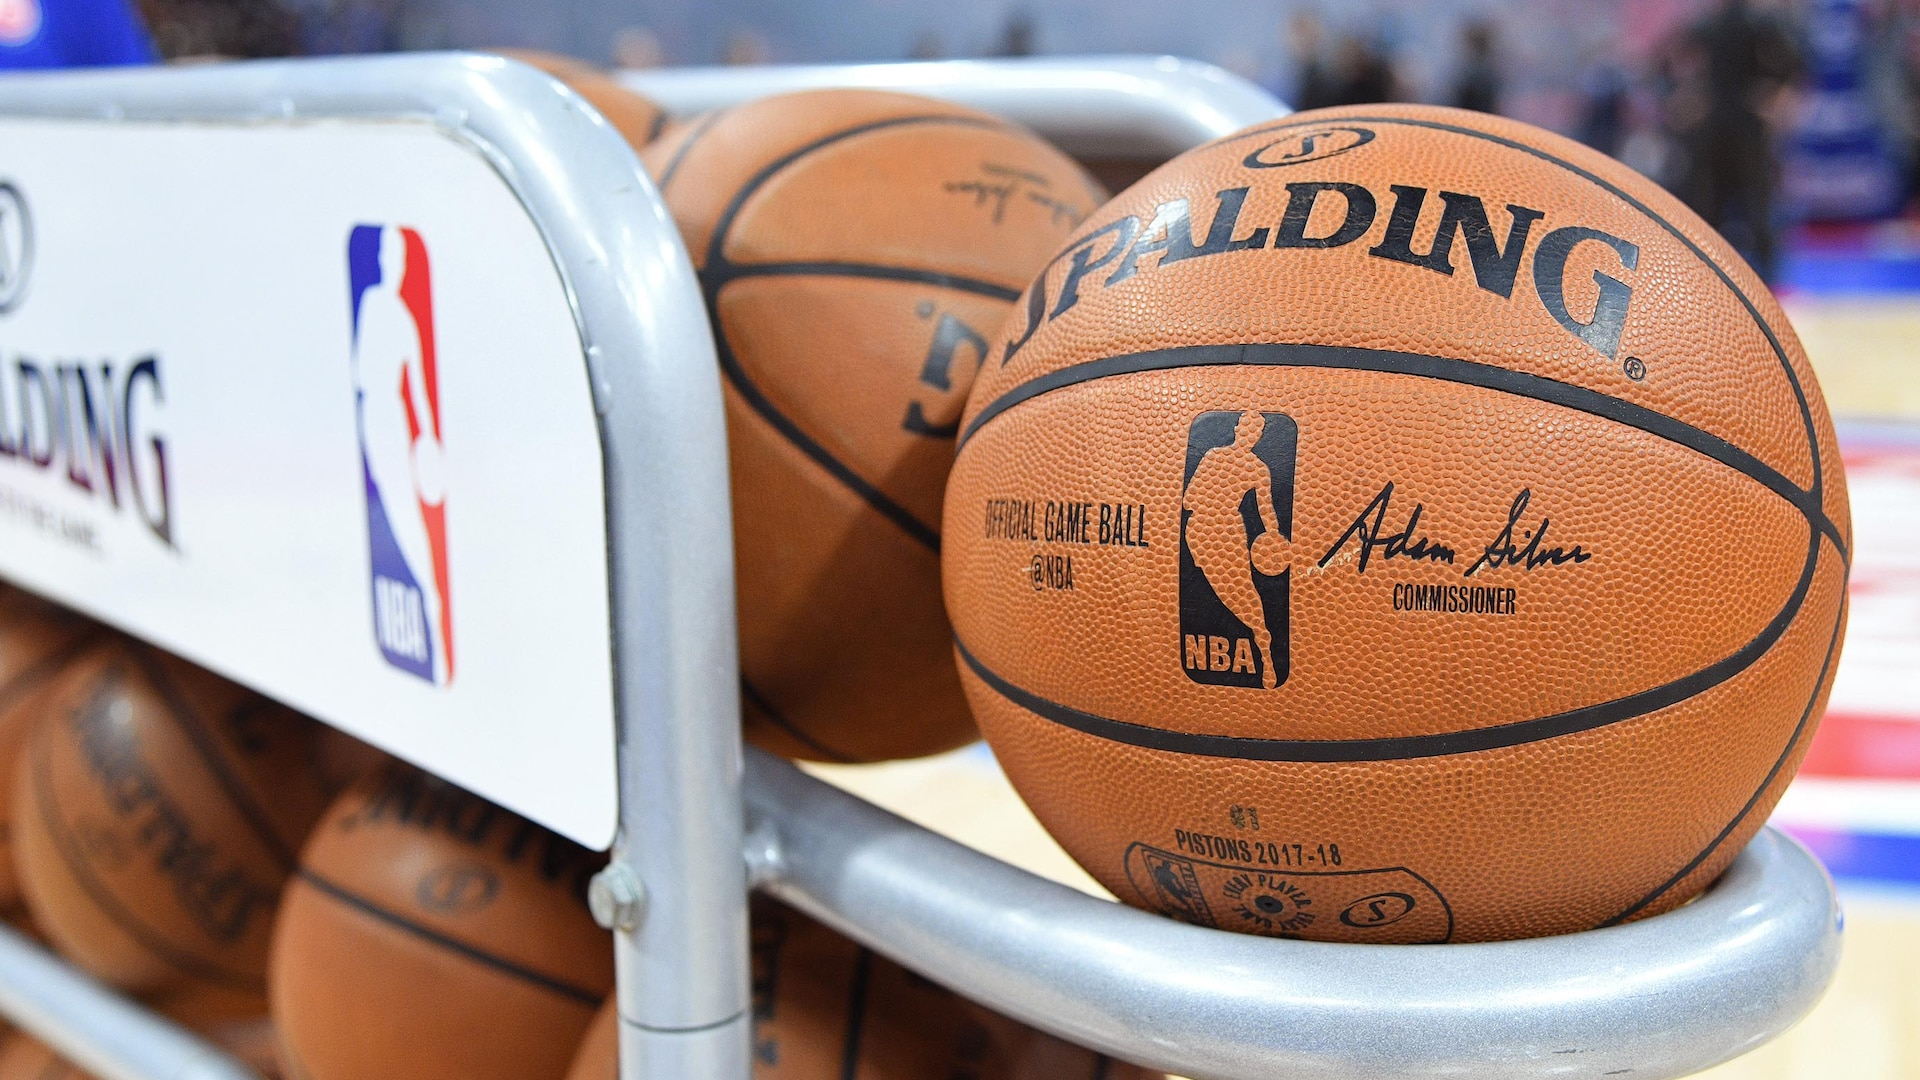 Report: Salary reductions for top NBA executives